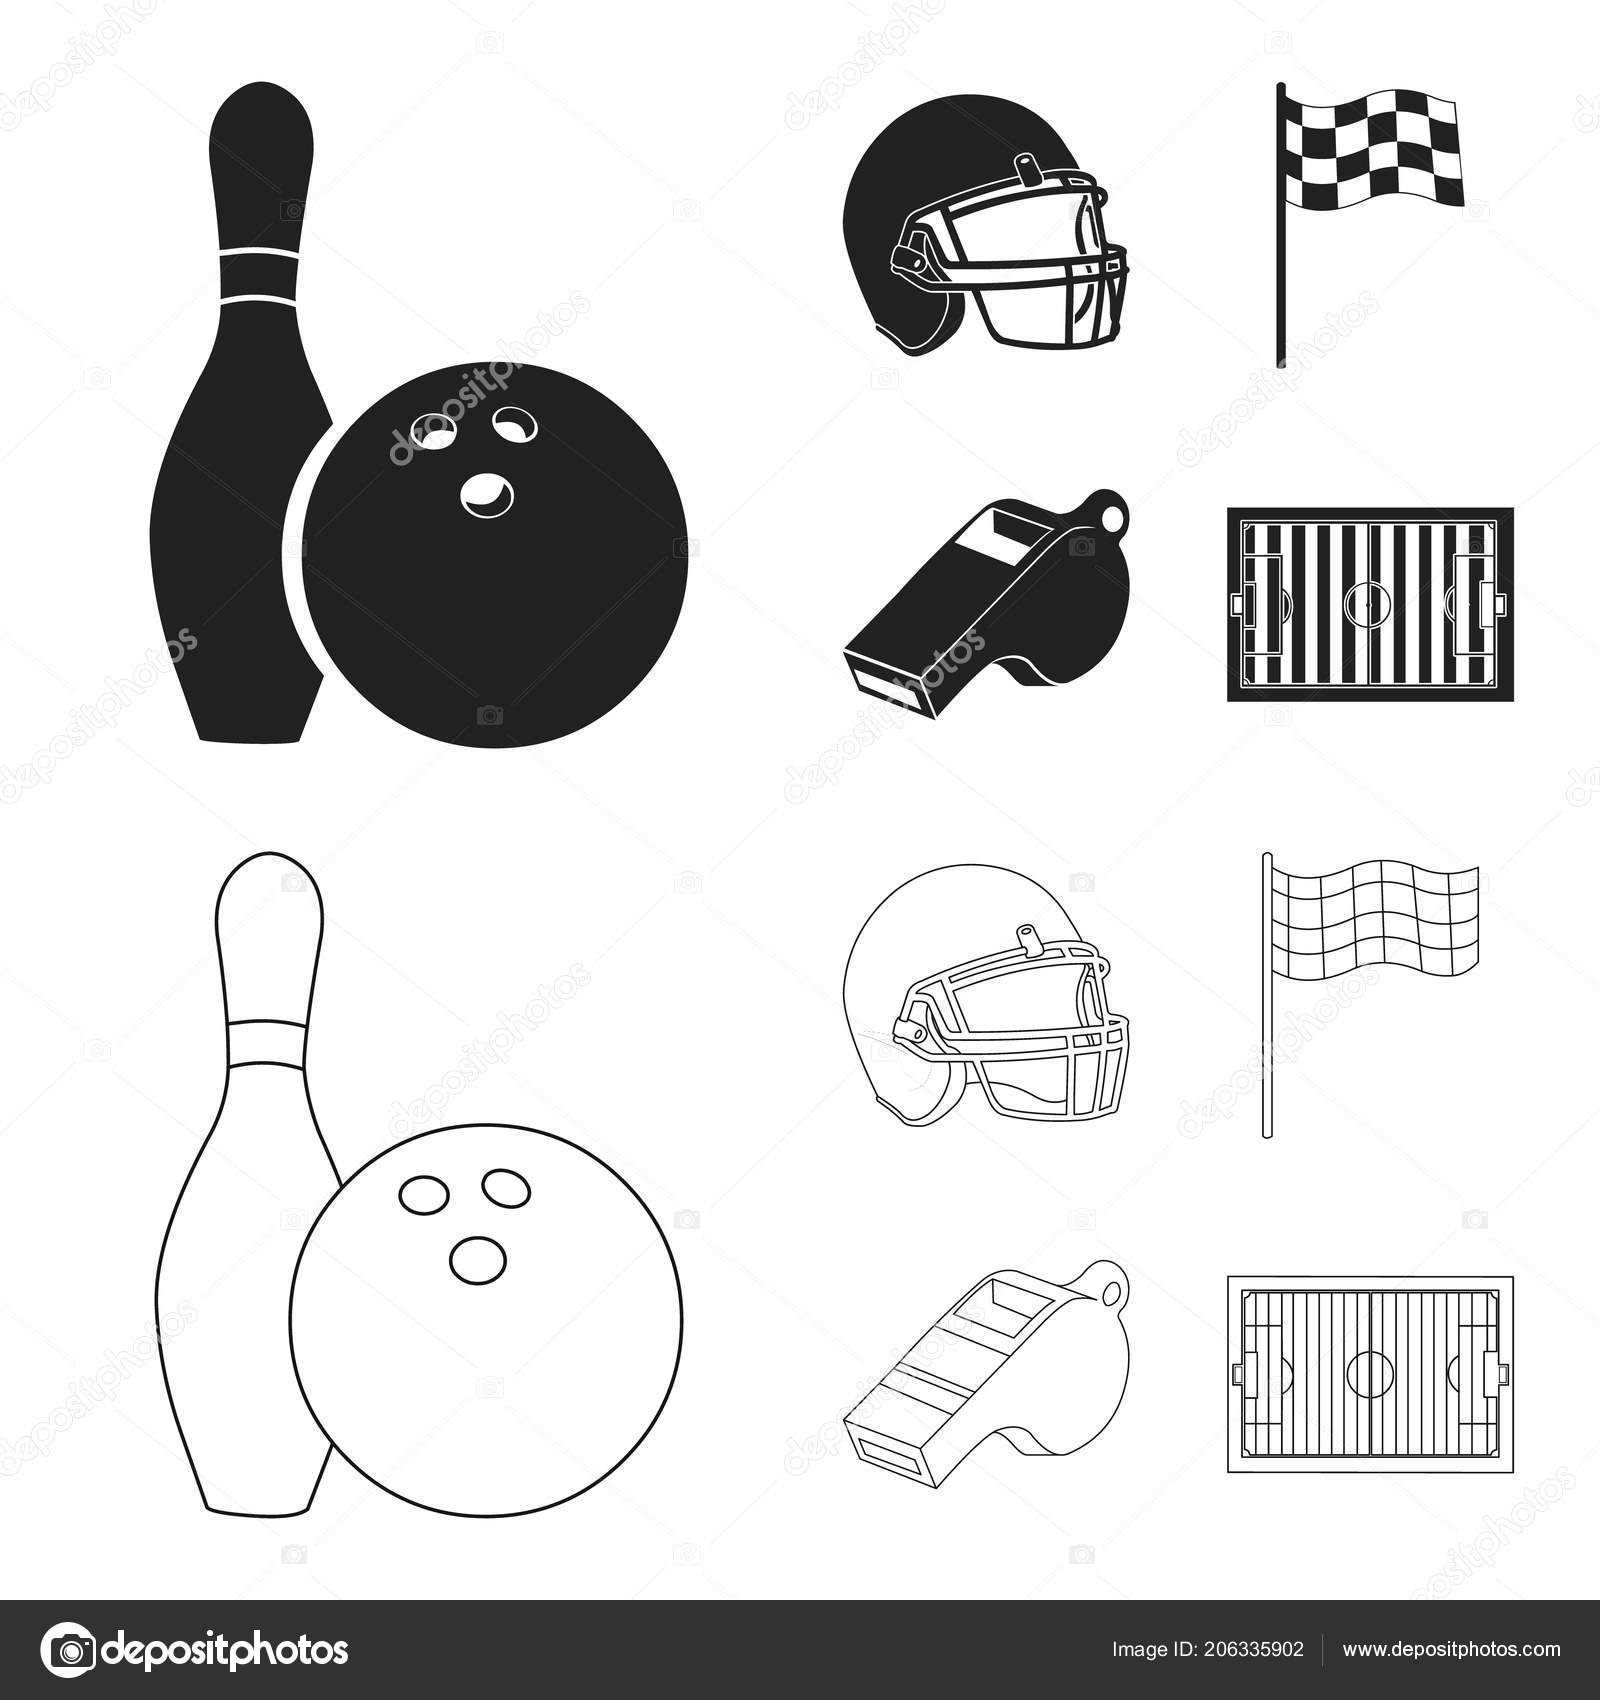 Bowl And Bowling Pin For Bowling Protective Helmet For Playing